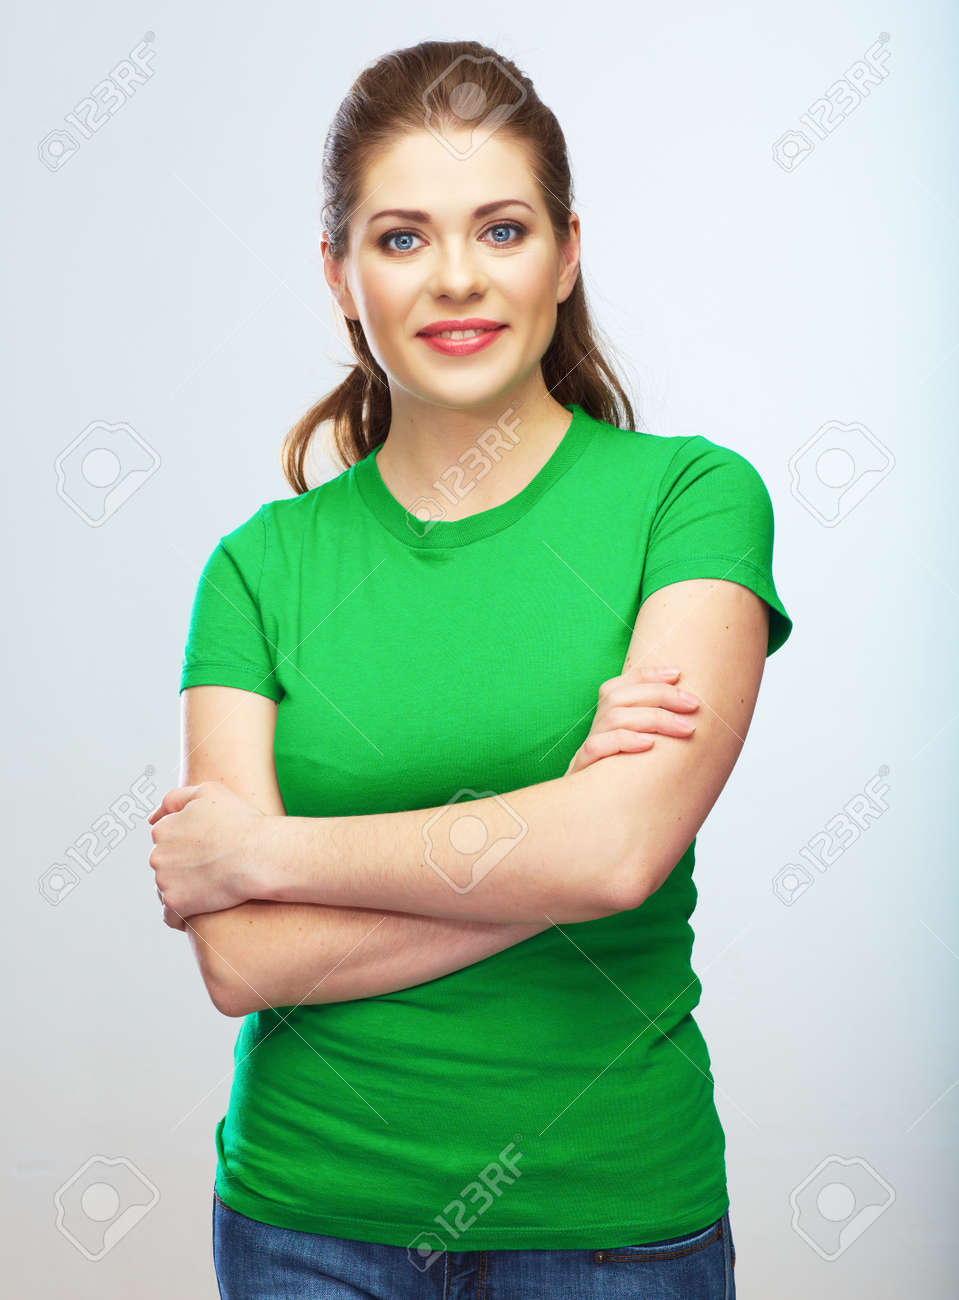 Young woman isolated portrait, green dressed female model. - 134020215